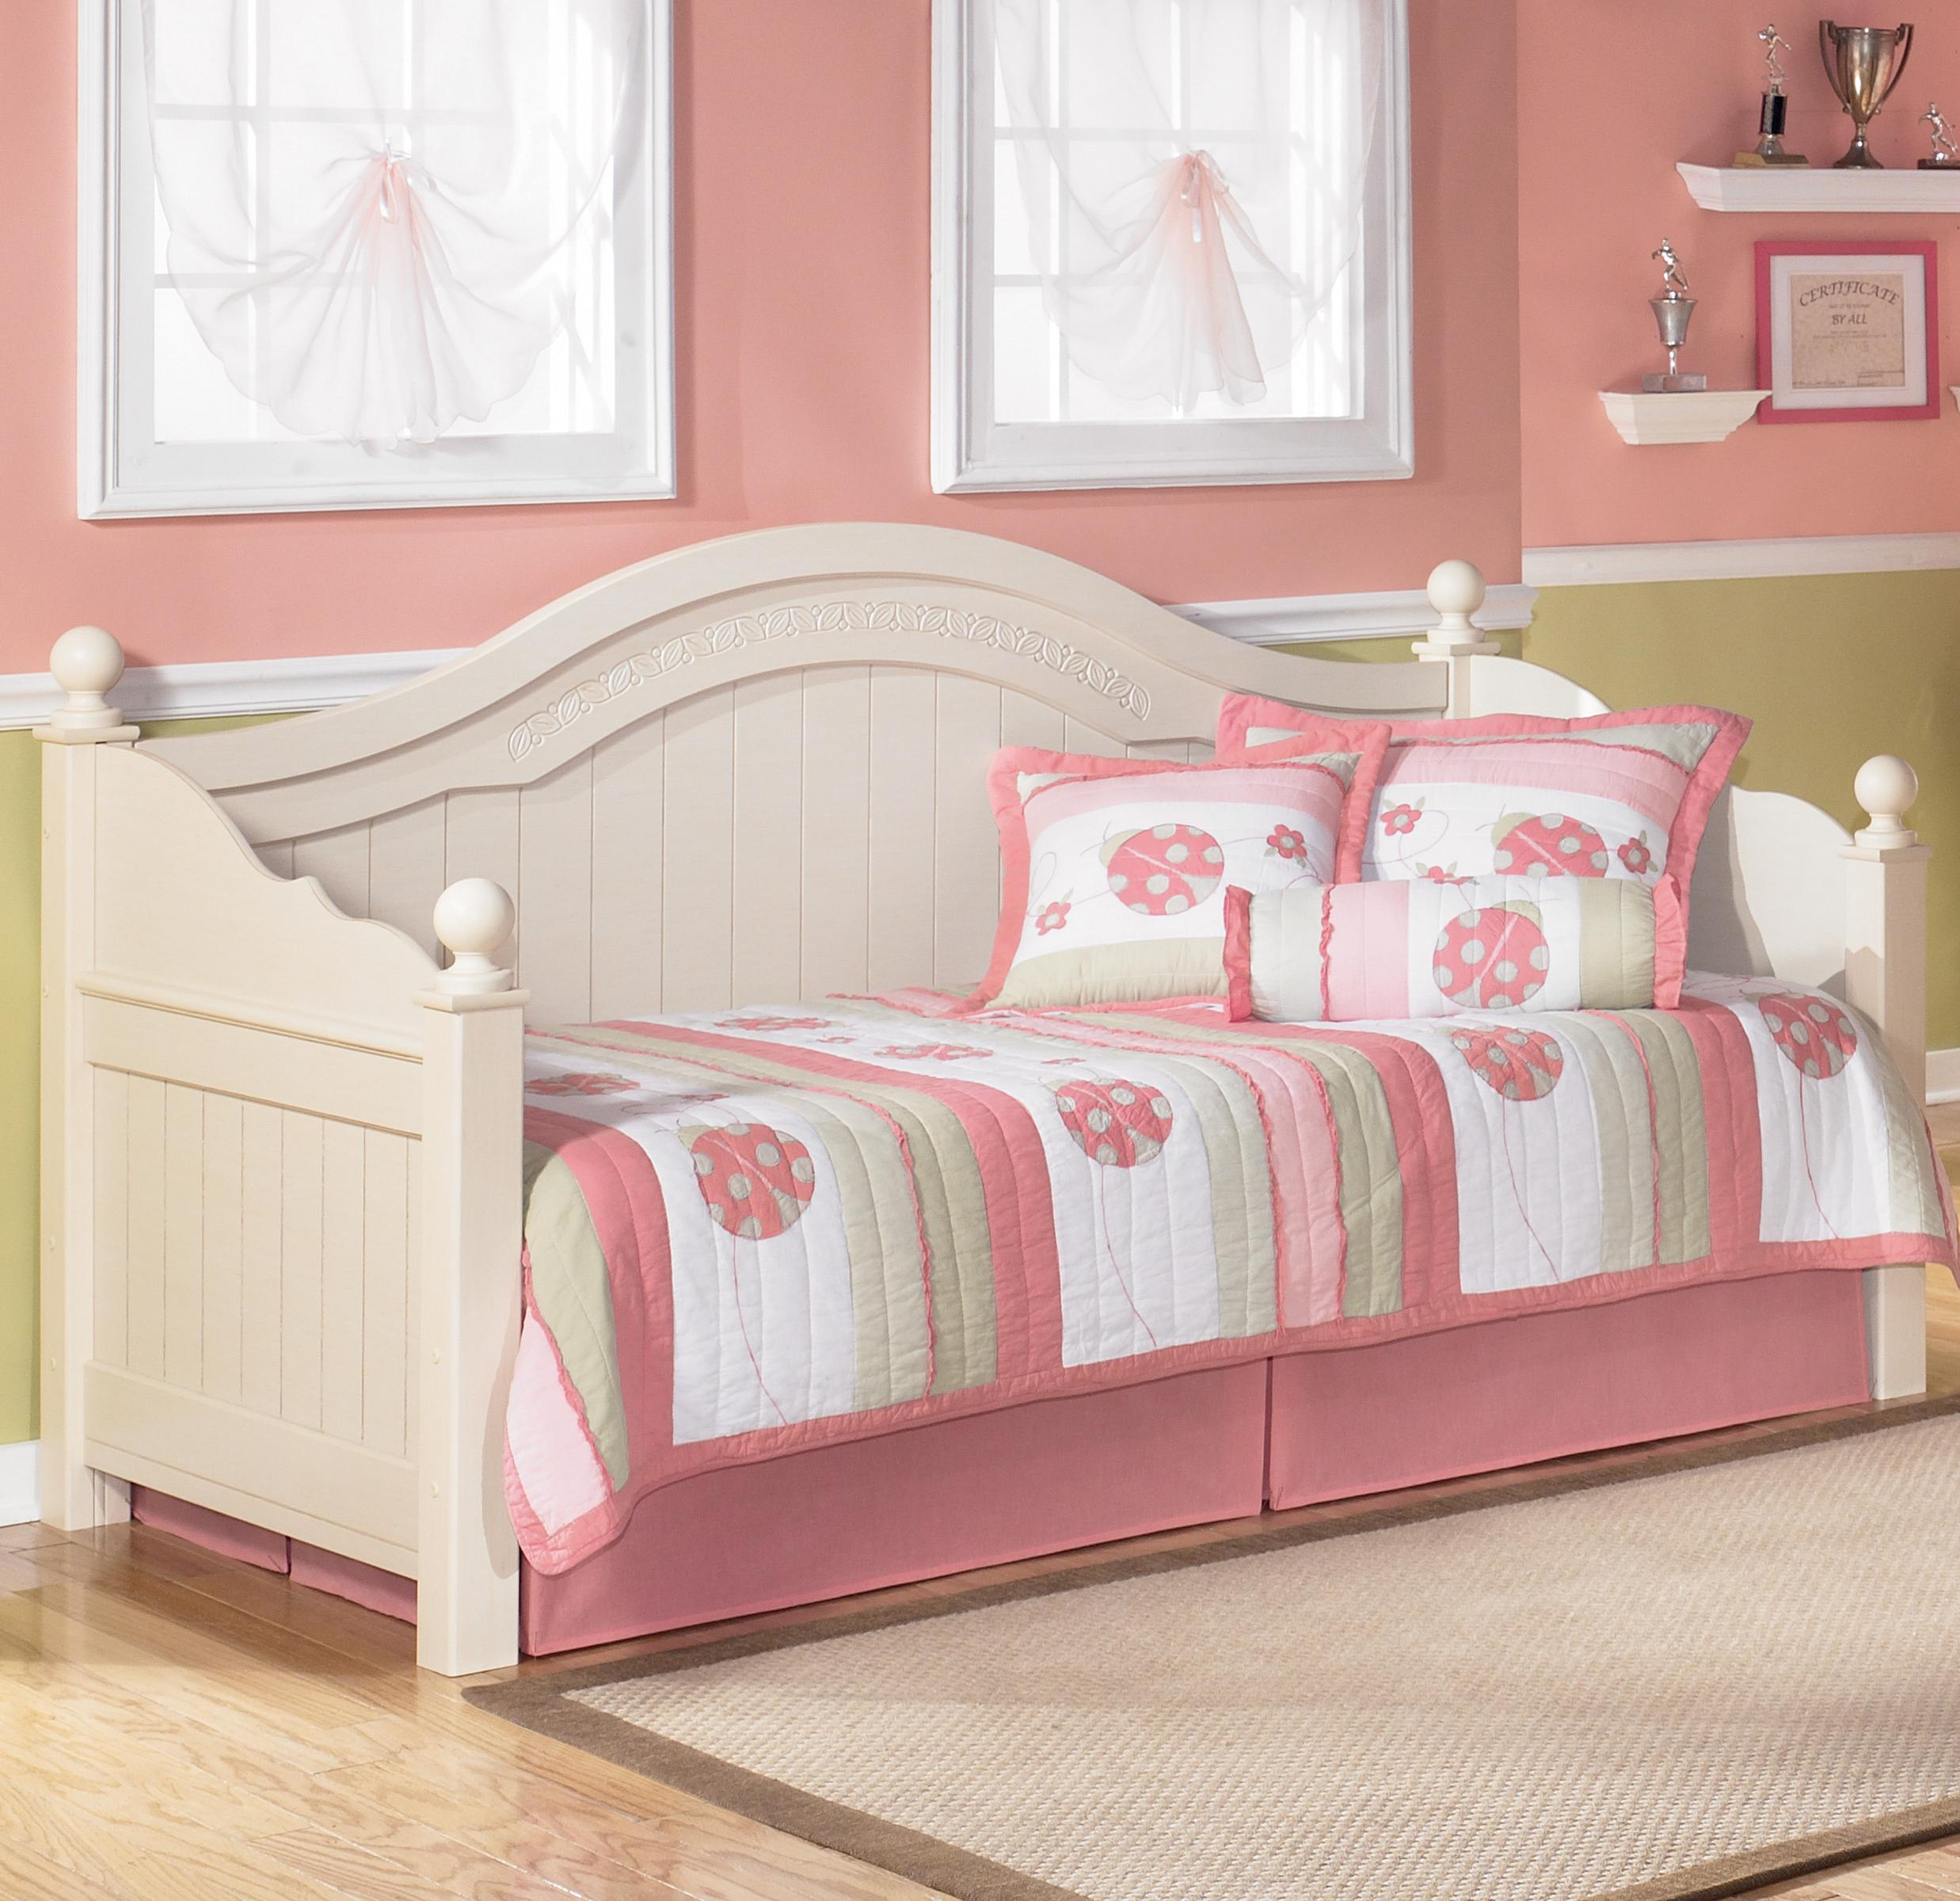 Signature Design by Ashley Furniture Cottage Retreat Day Bed - Item Number: B213-80+B100-81